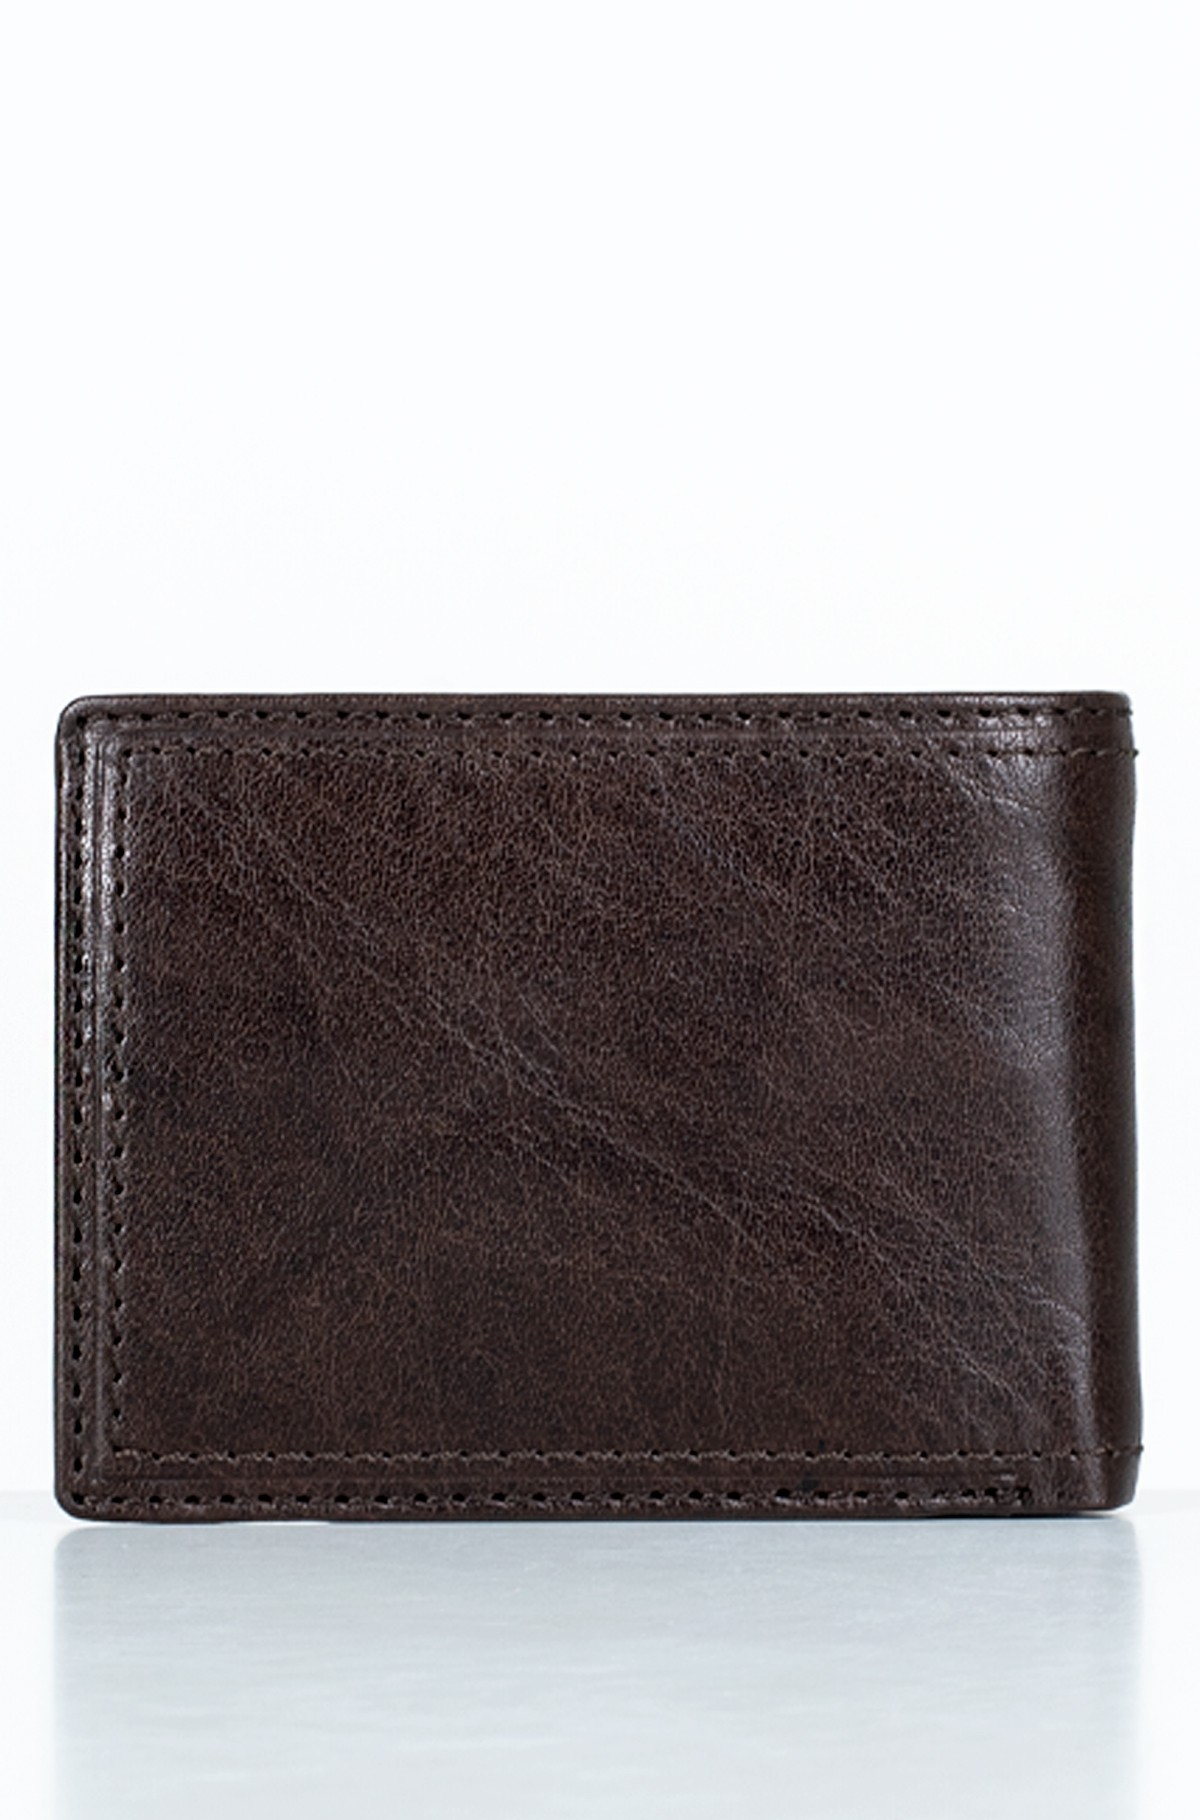 Wallet and a key chain in a gift box 288/701-full-5